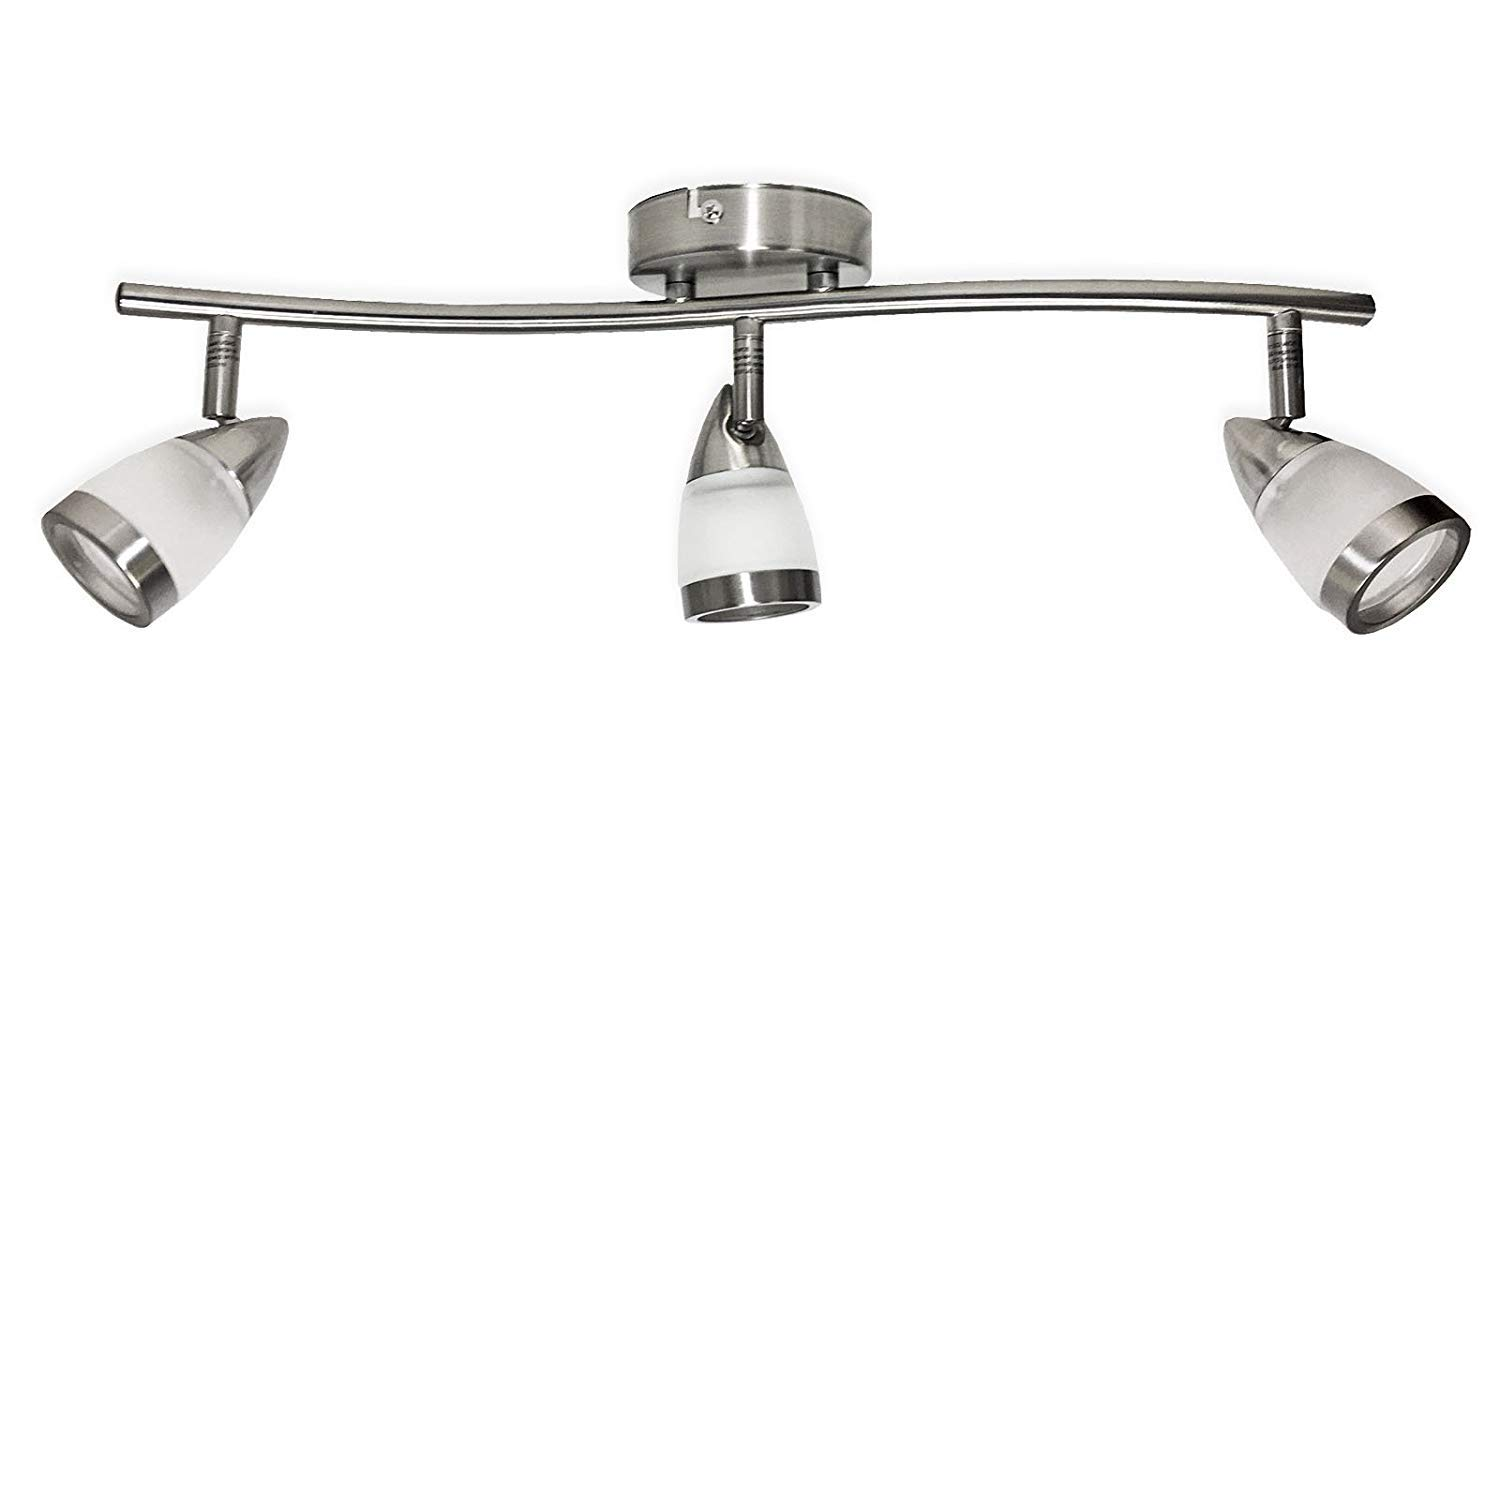 Powersave Modern Brushed Steel Triple Light Curved Bar Ceiling Satin Chrome Pull Cord Switch Amazoncouk Lighting Fitting Takes 3 X Gu10 Bulbs Led Compatible Kitchen Home